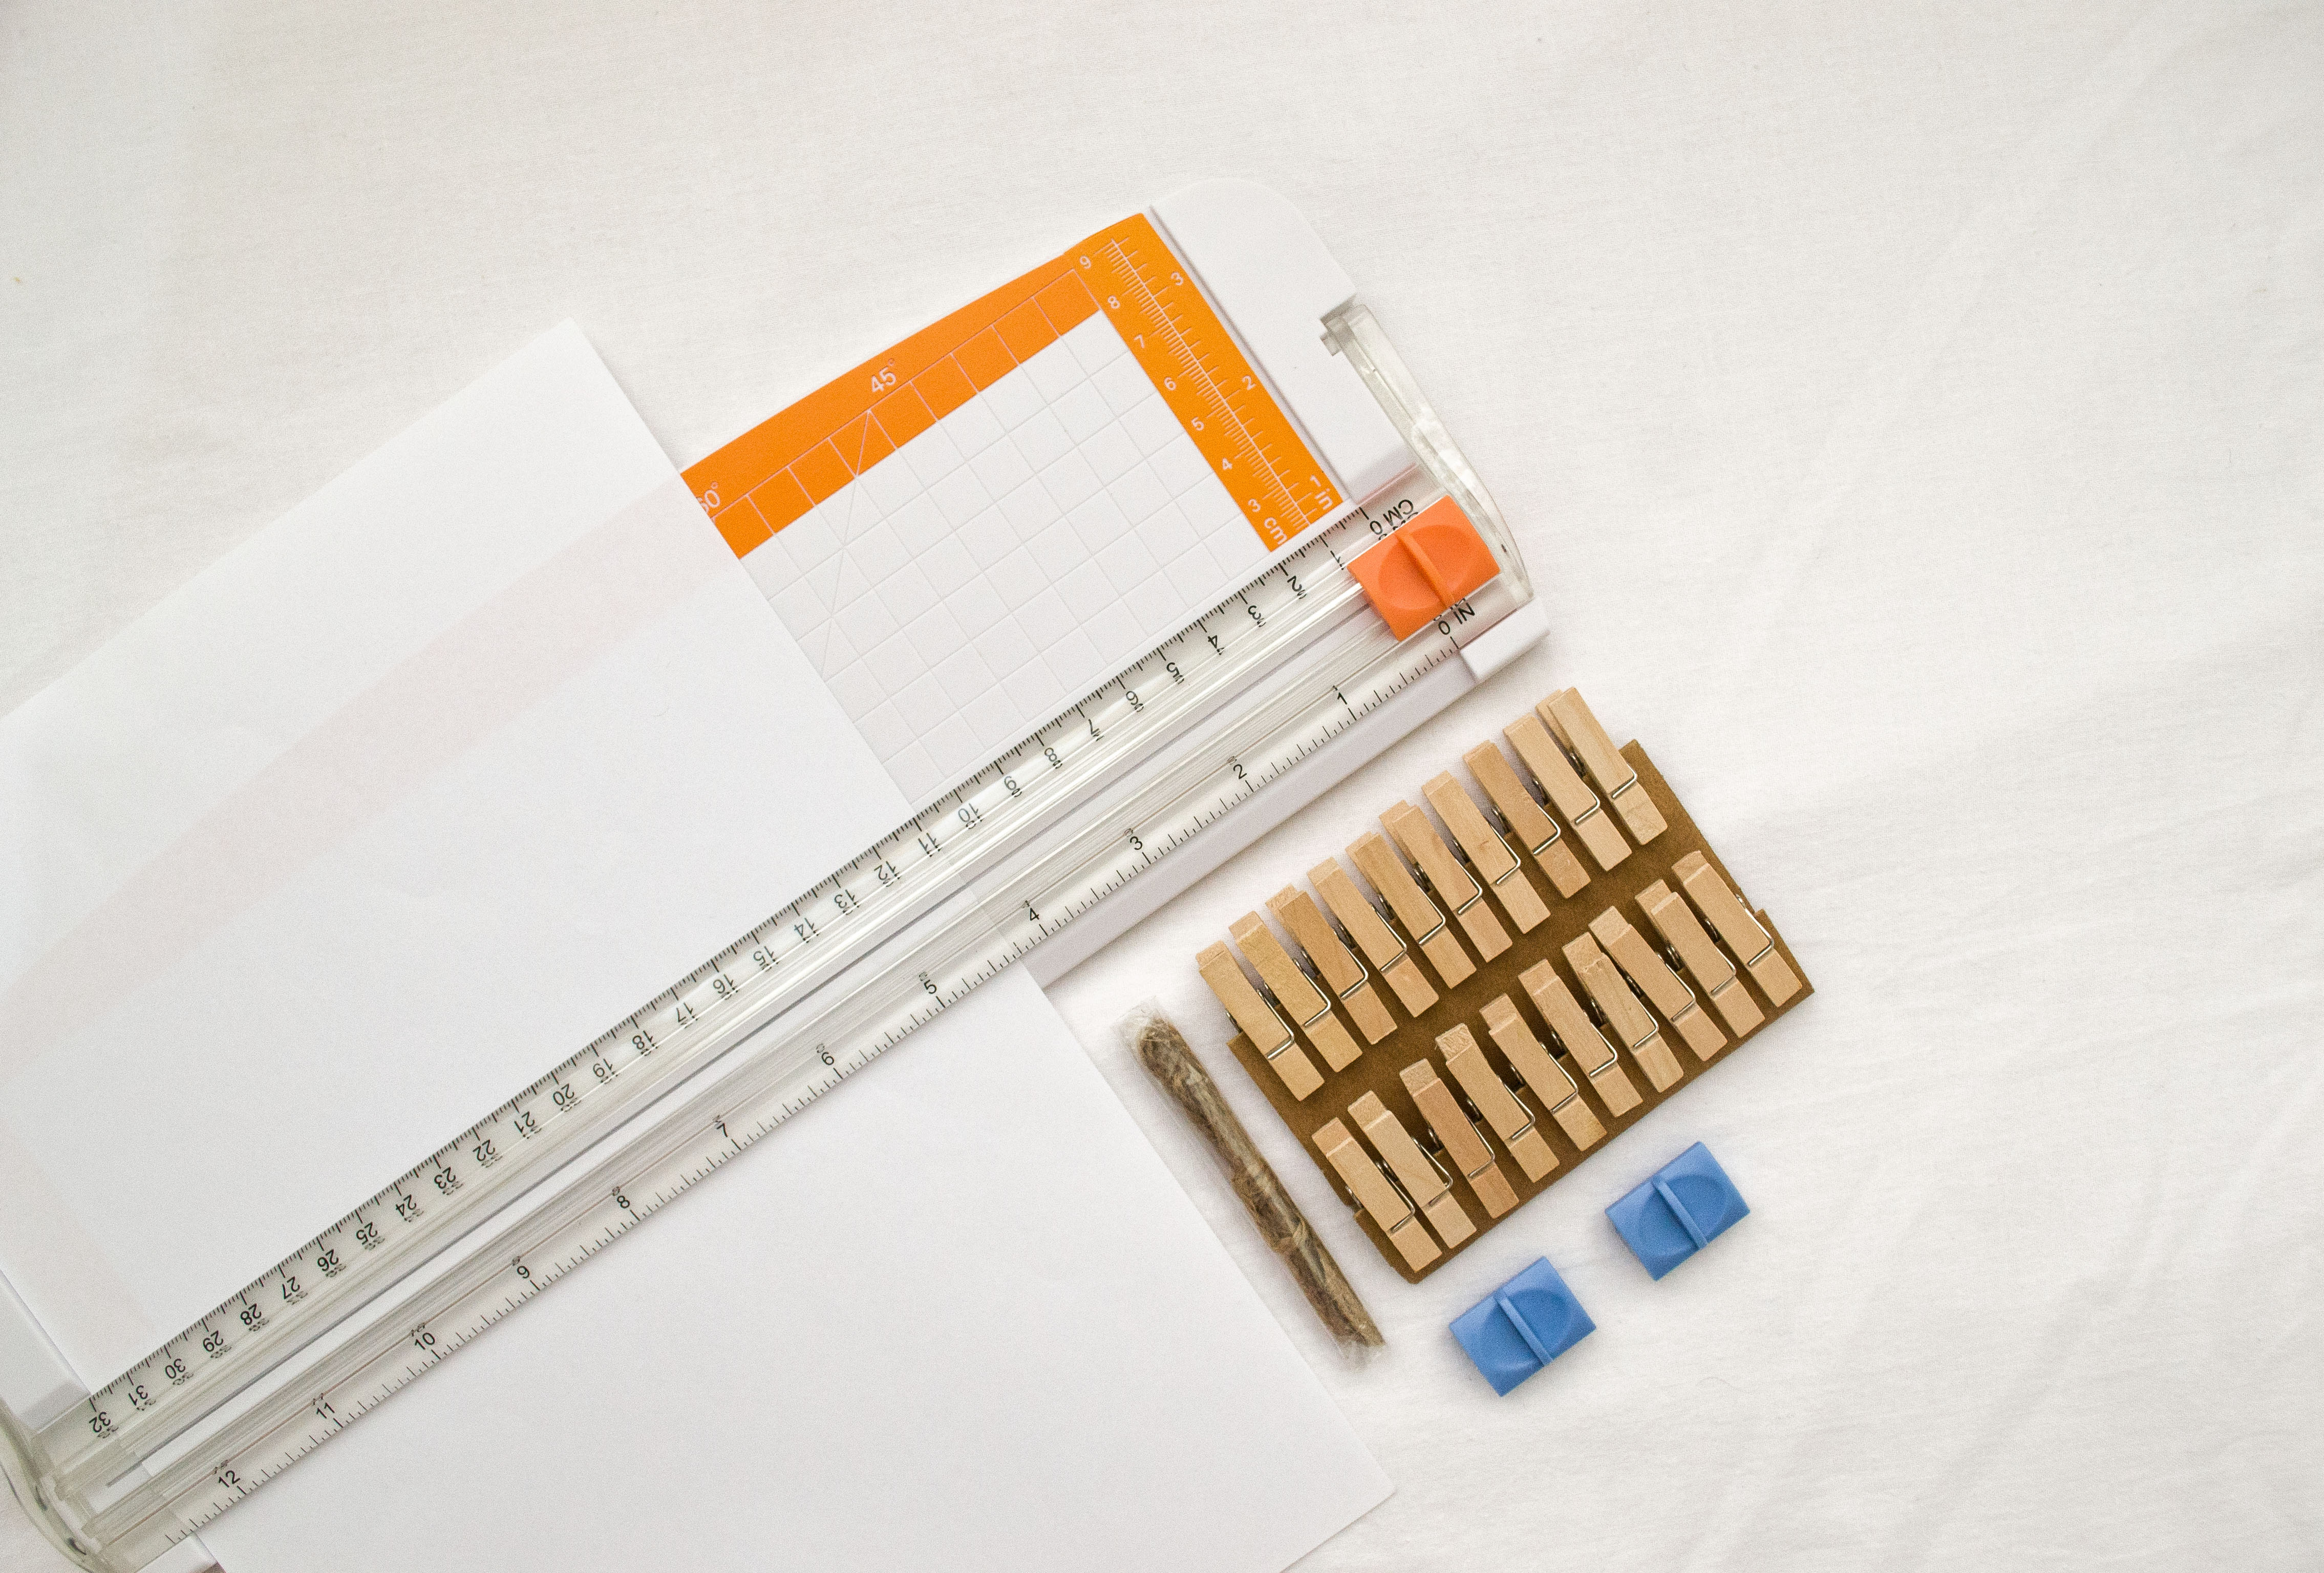 clear acrylic ruler on white paper